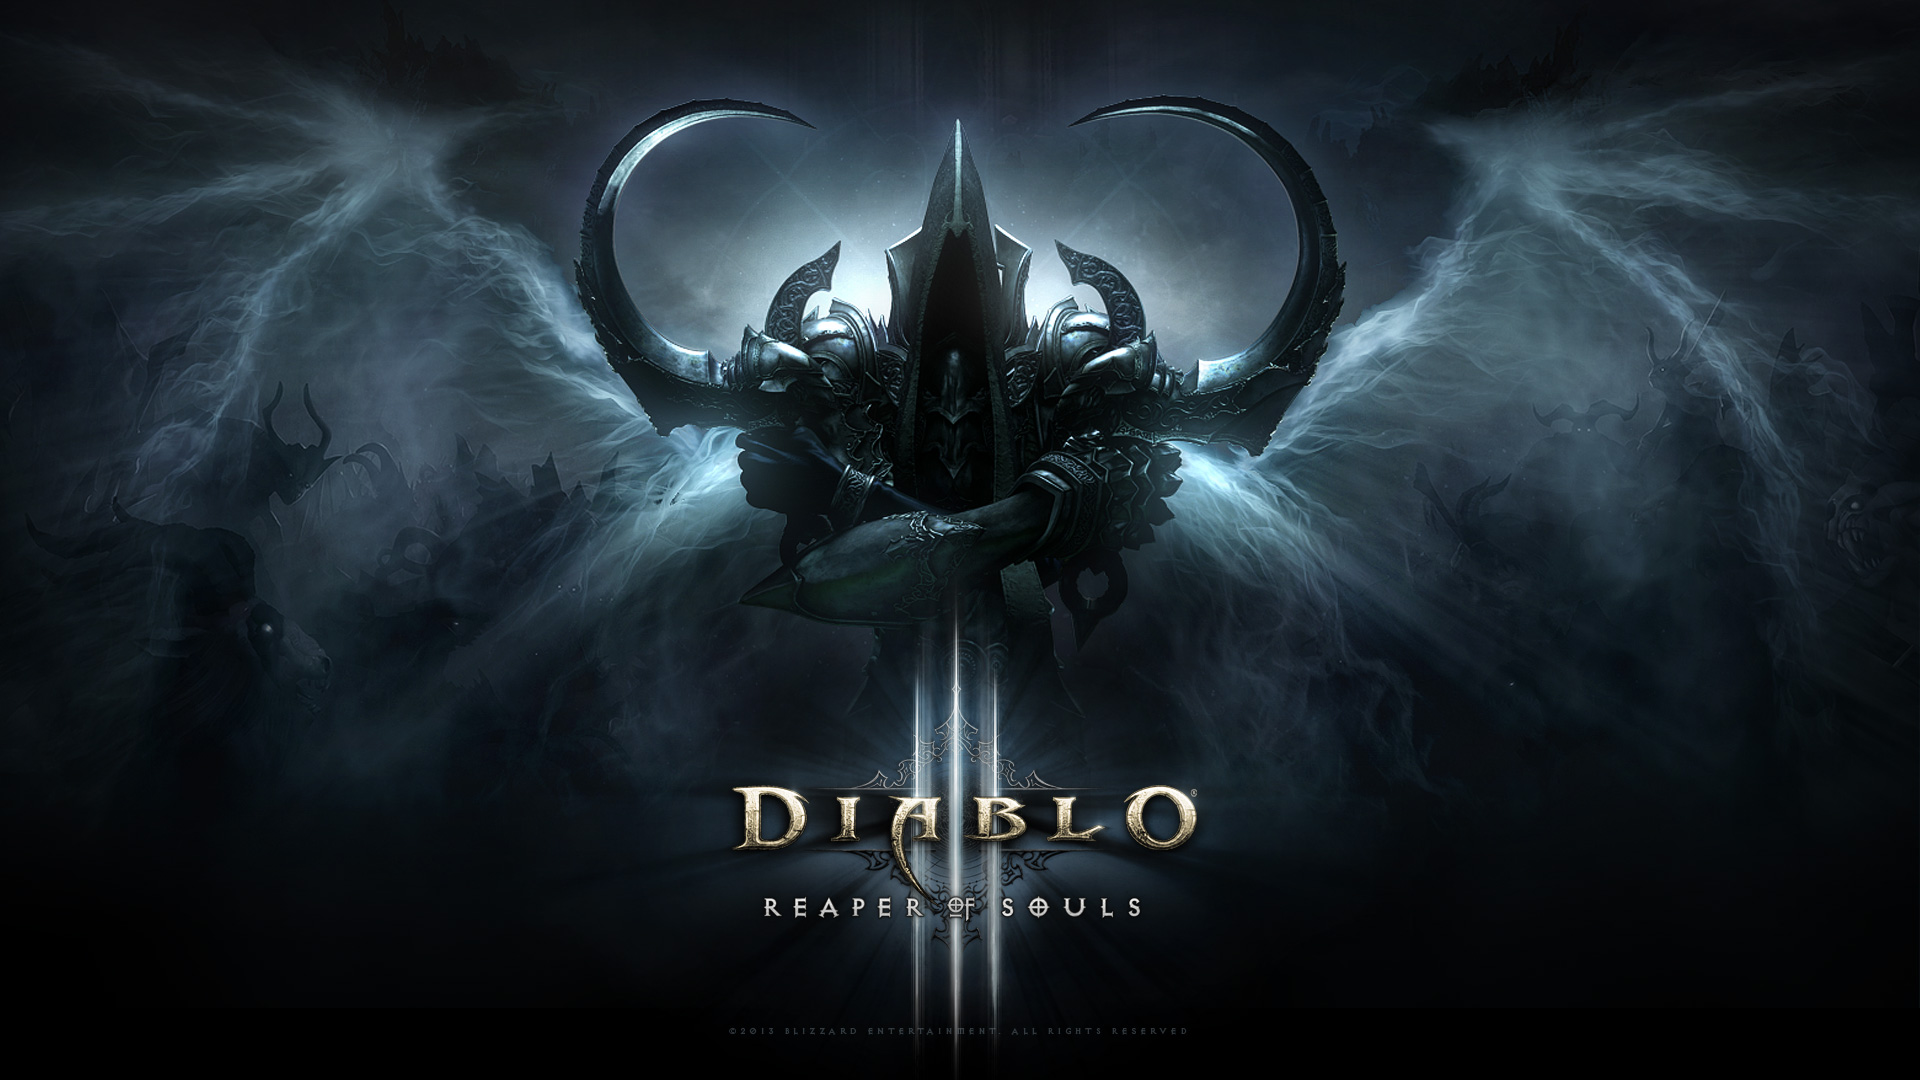 Diablo 3 Reaper of Souls trailer